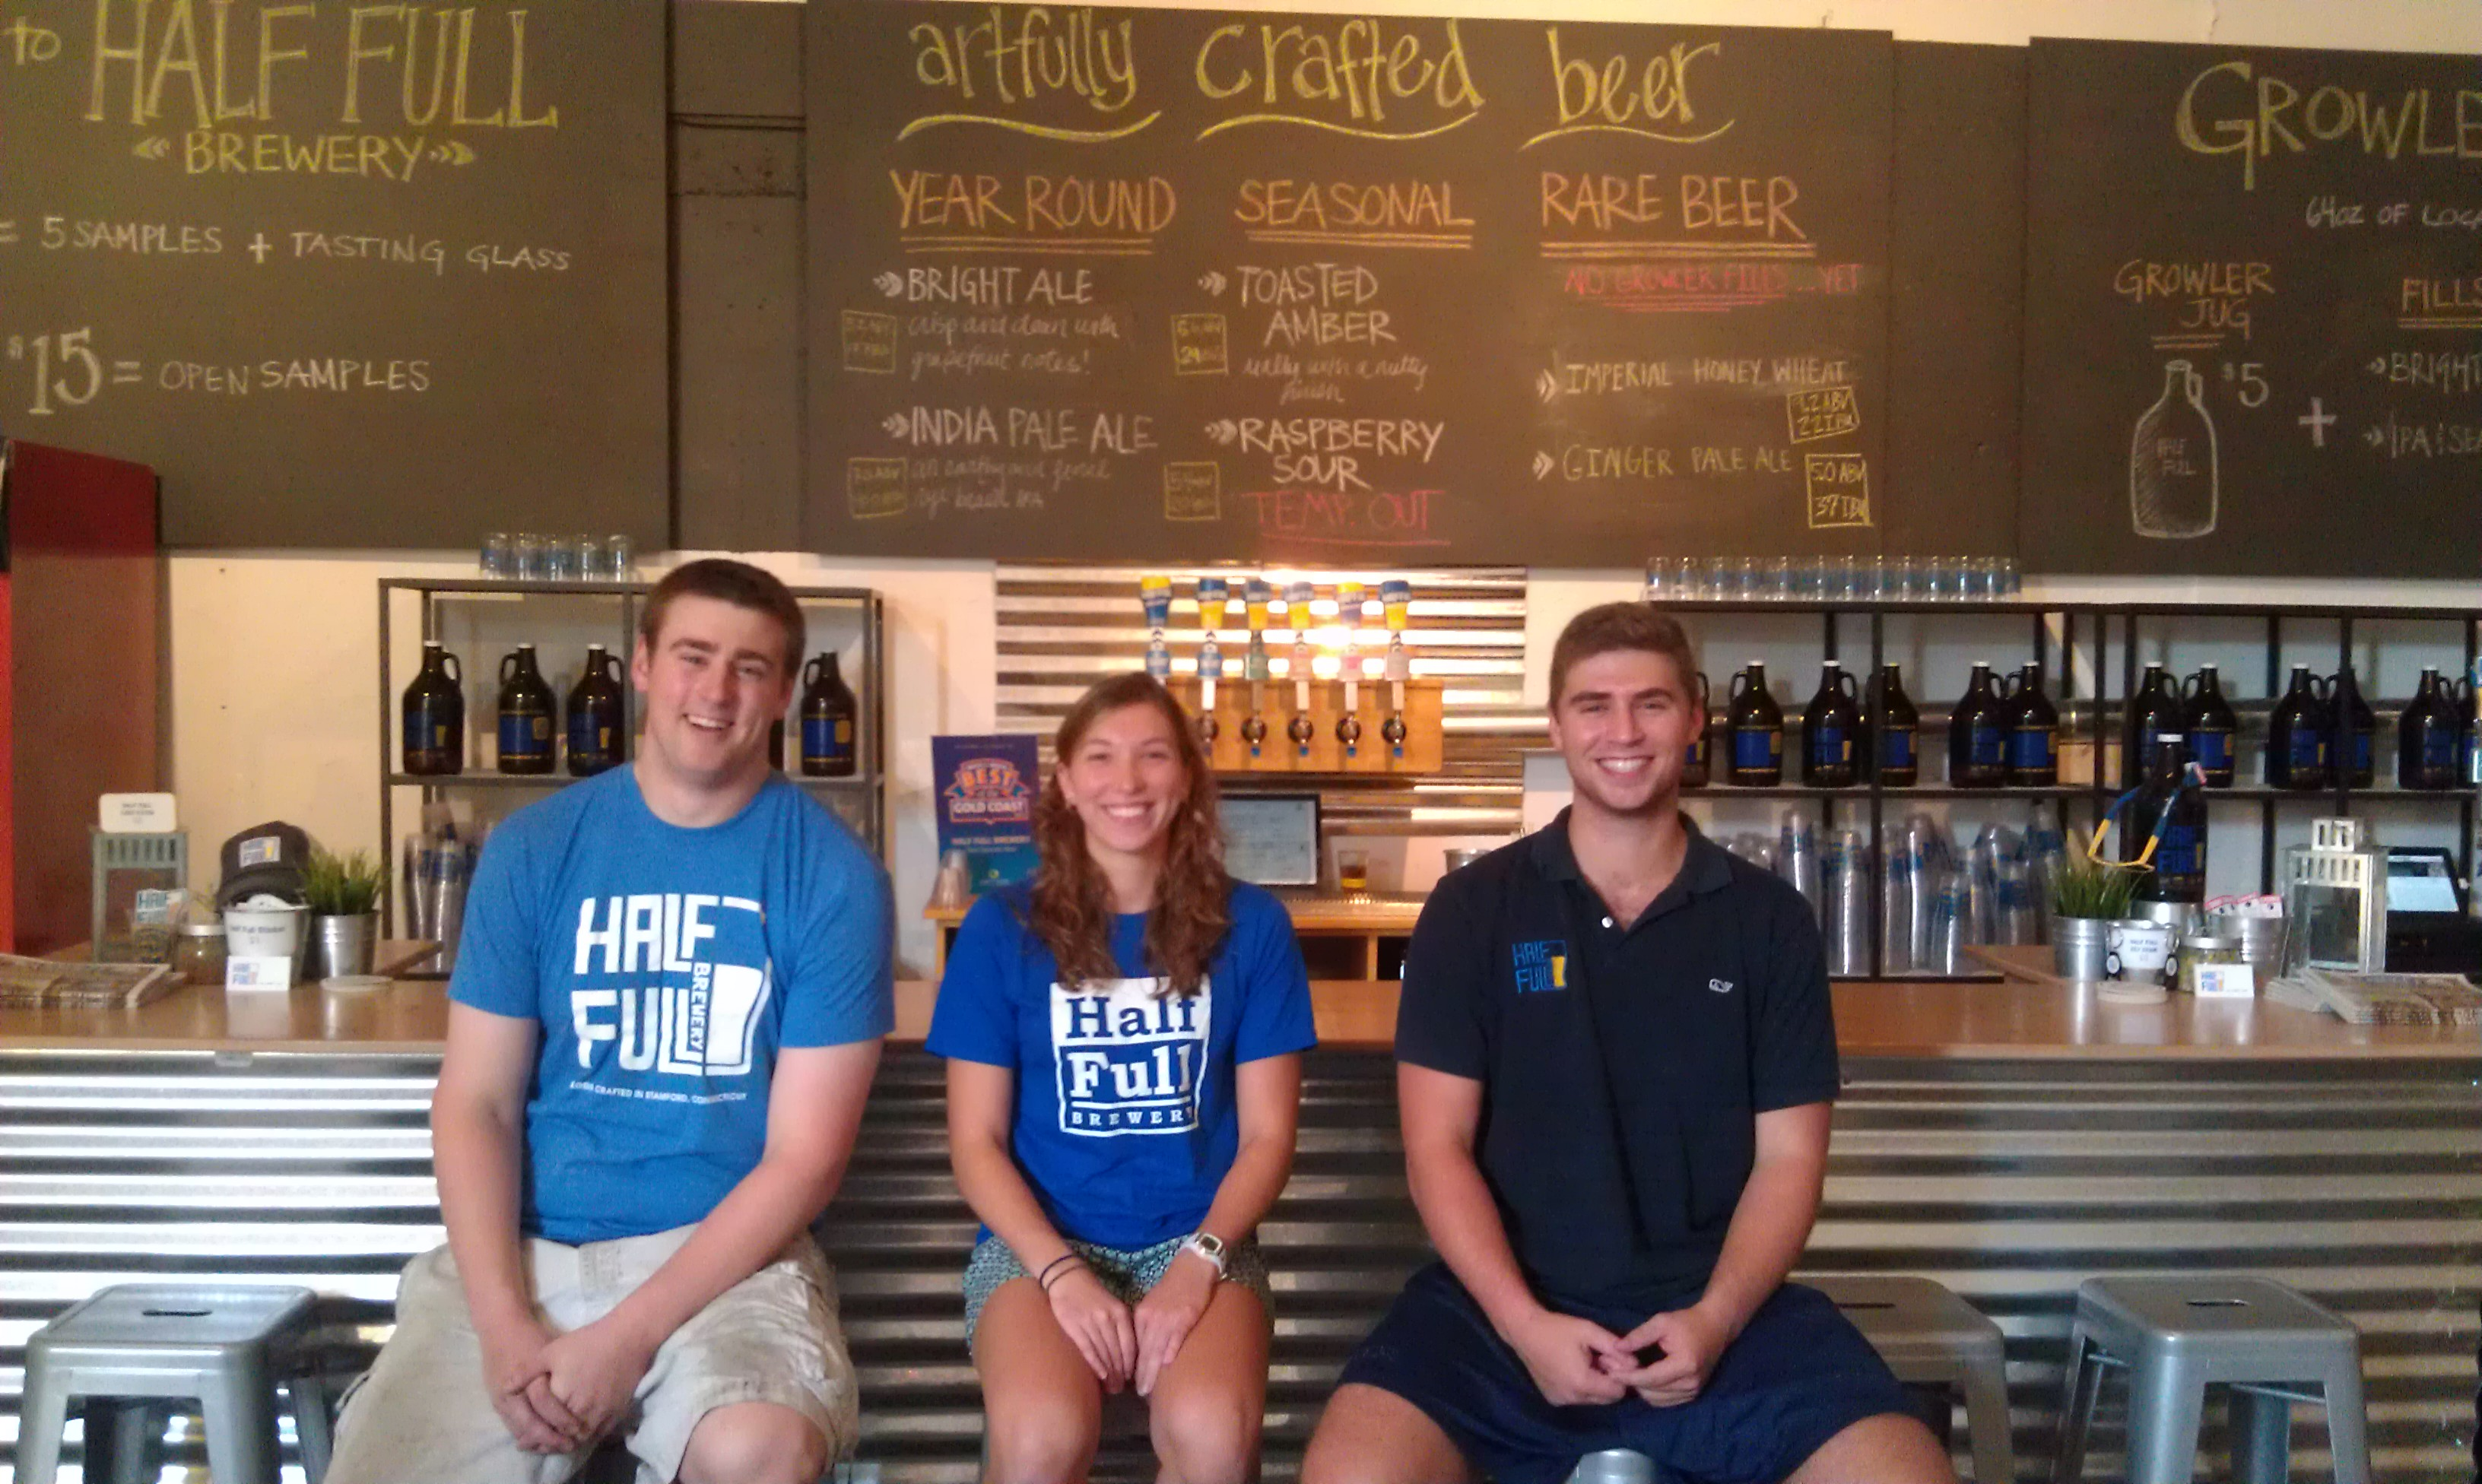 Half Full Brewery in Stamford hired three new employees, including a New Canaan native.